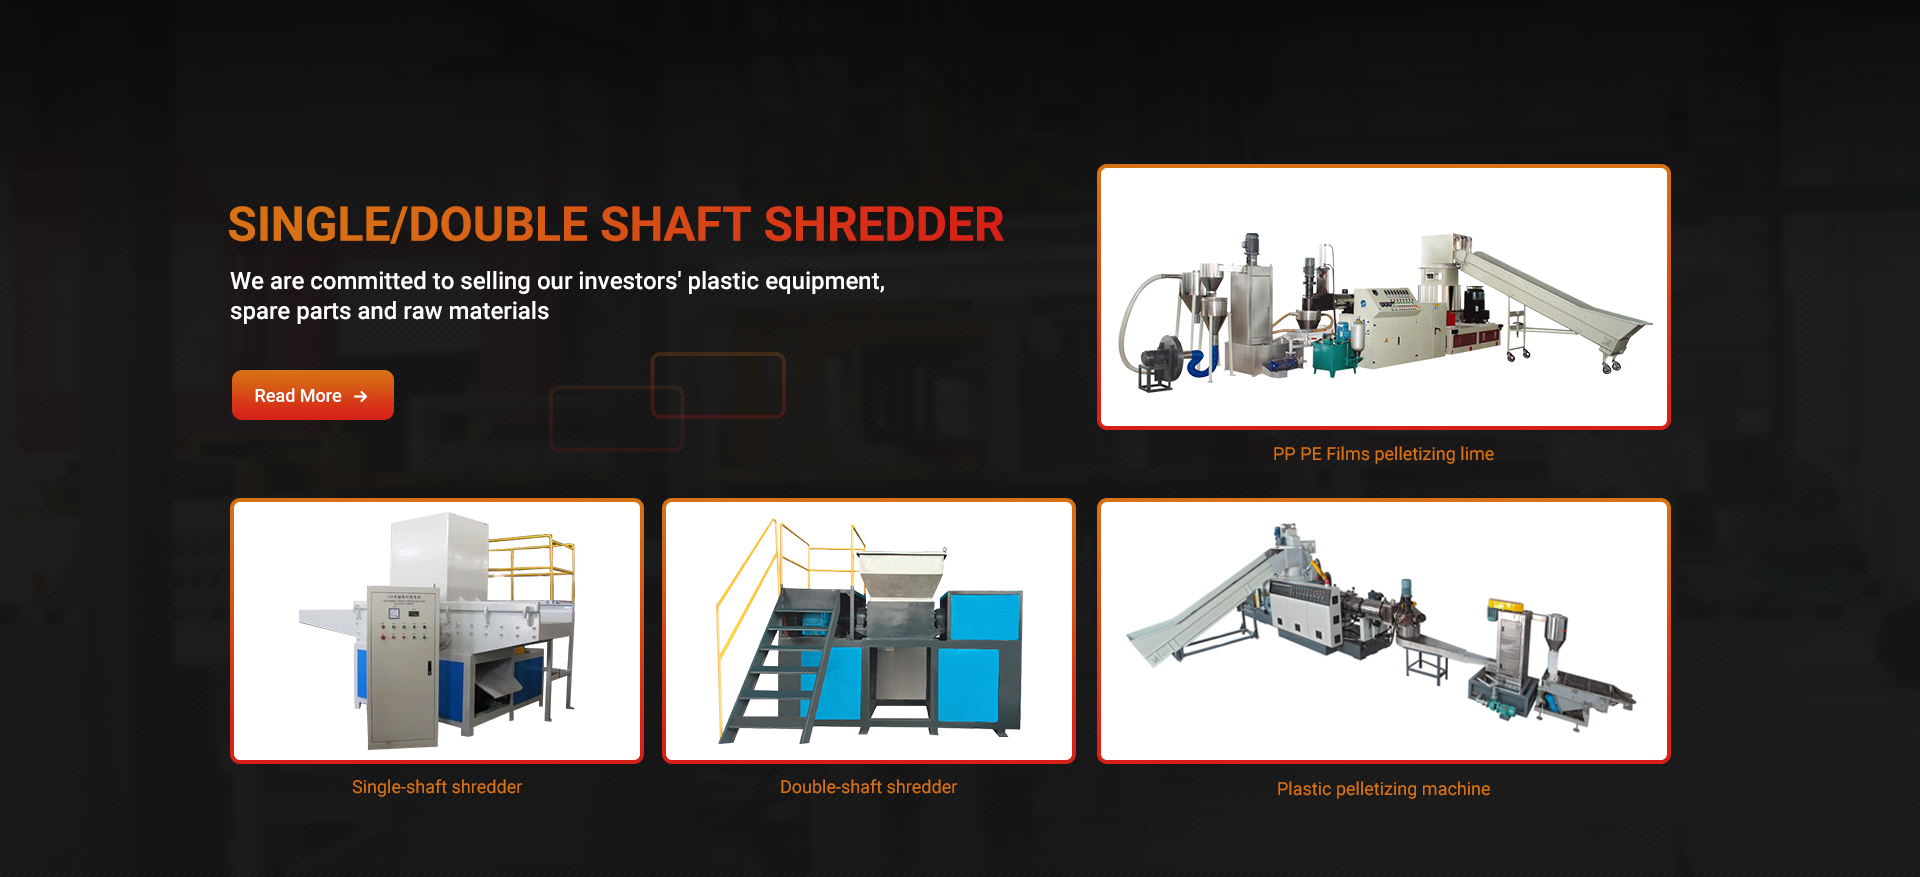 Single/double shaft shredder